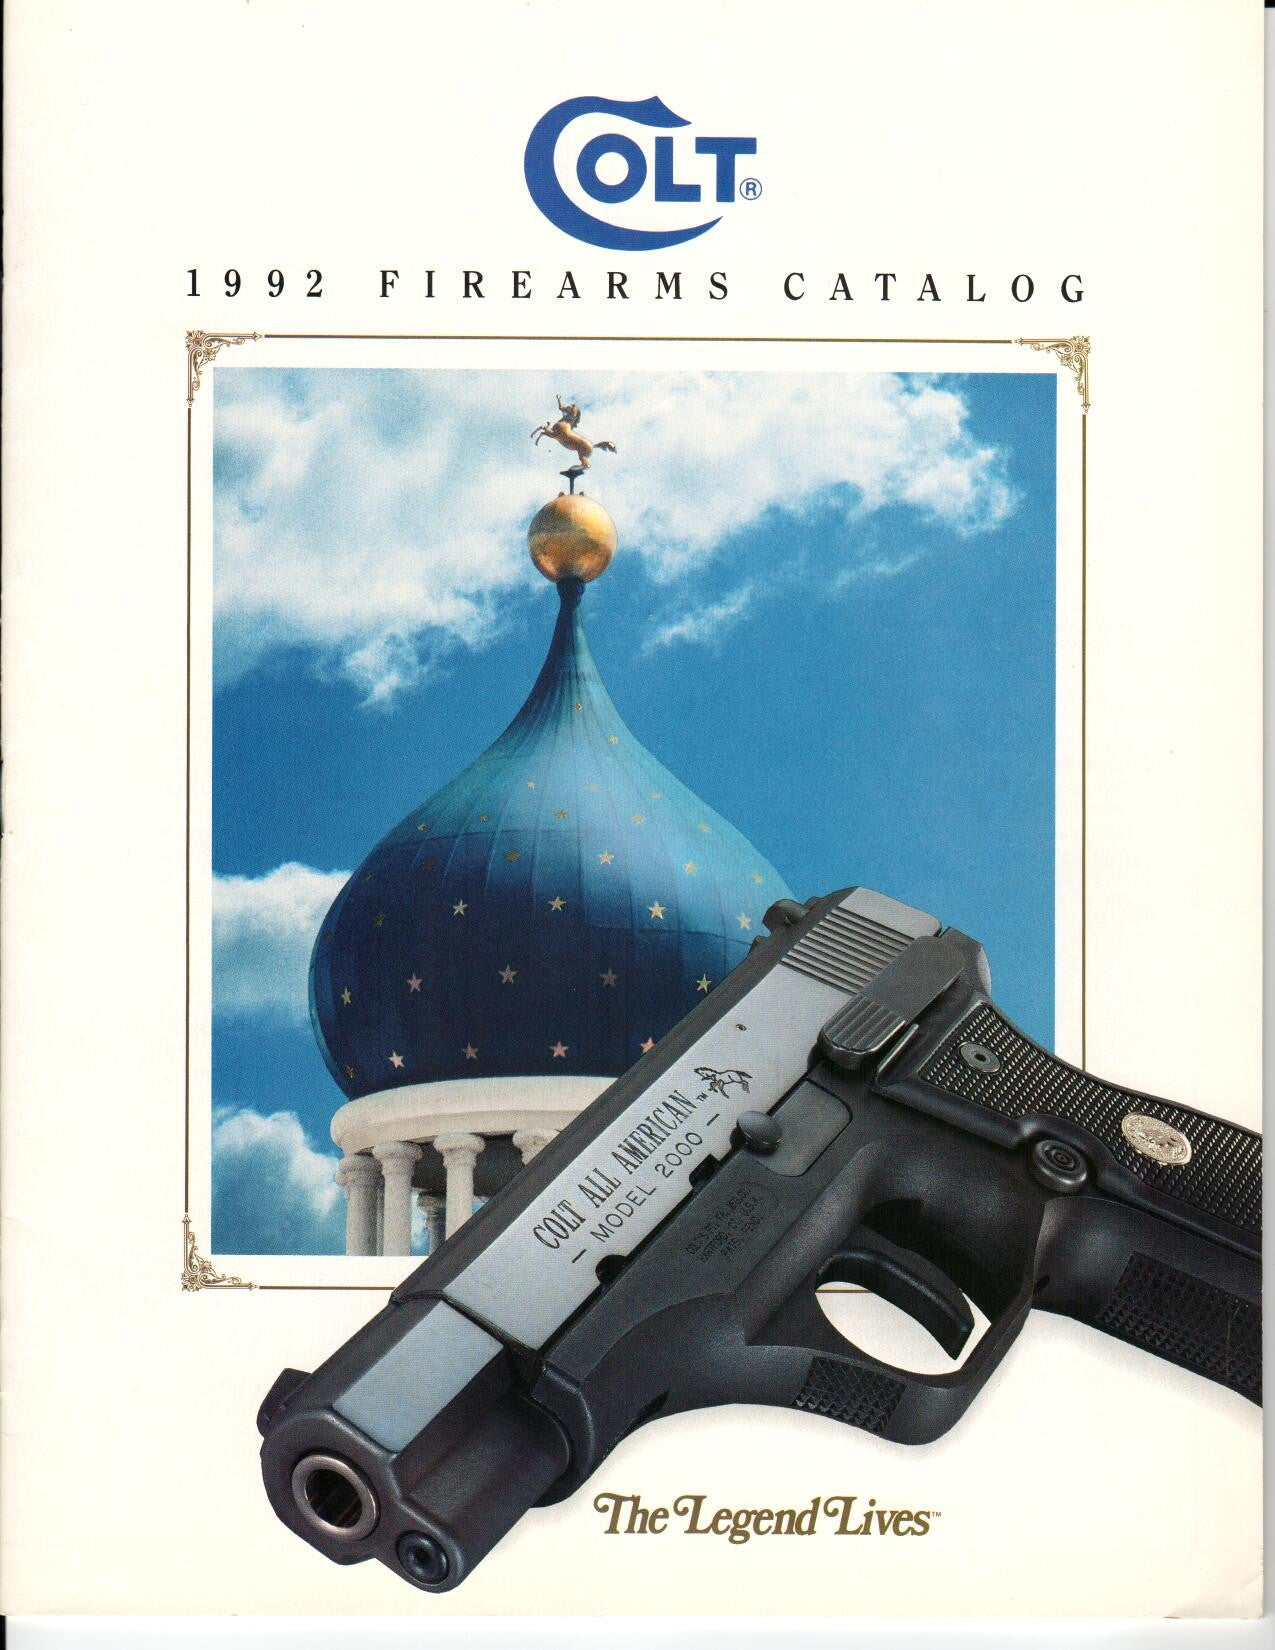 Colt 1992 Firearms Catalogue 'The Legend Lives',Catalogues & Brochures- Canada Brass